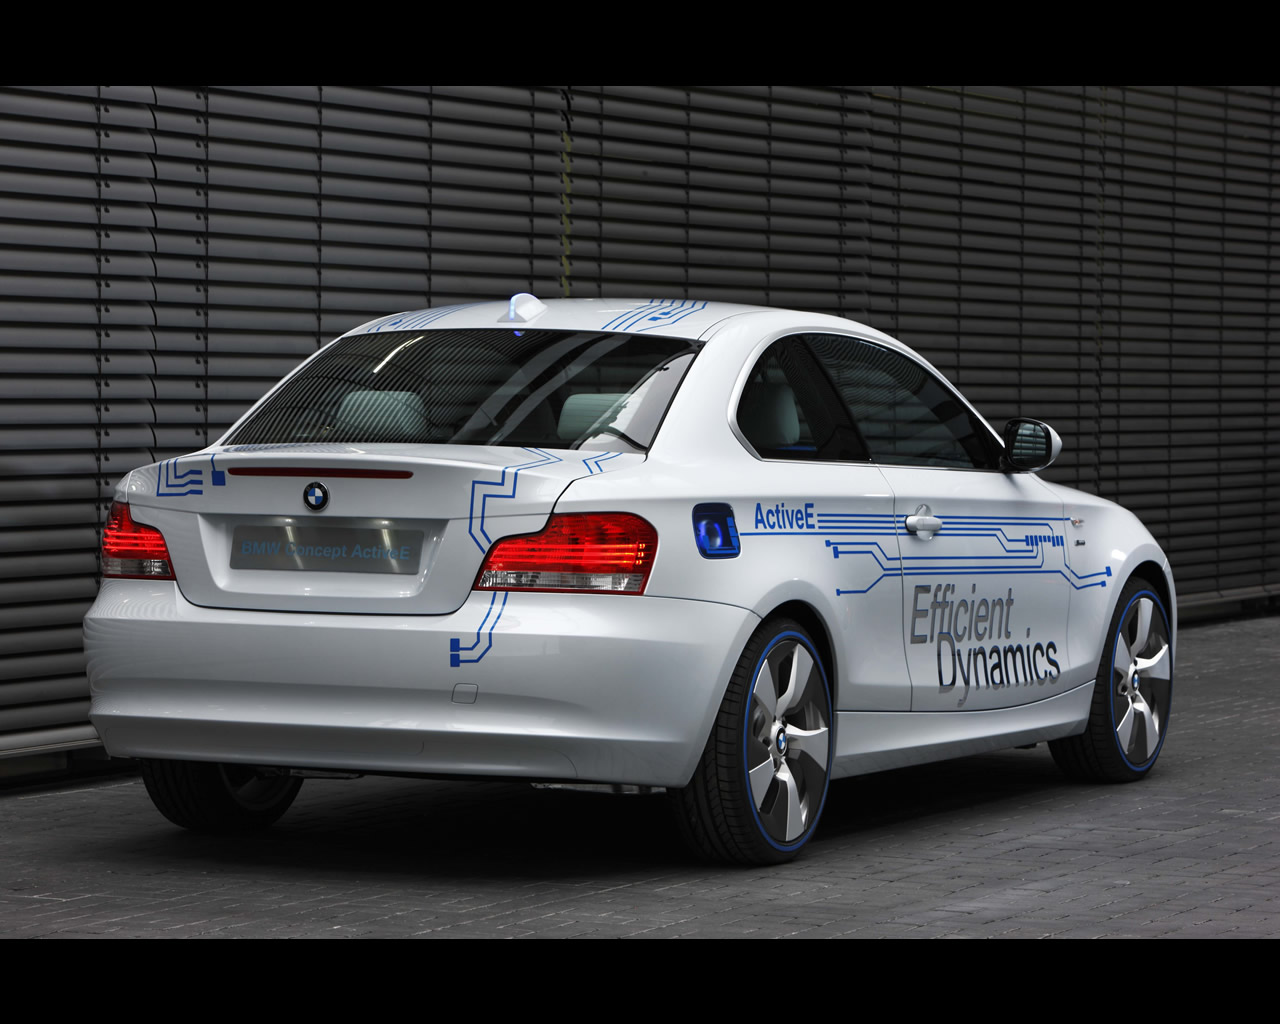 BMW 1 Series ActiveE Electric propulsion Concept 2010